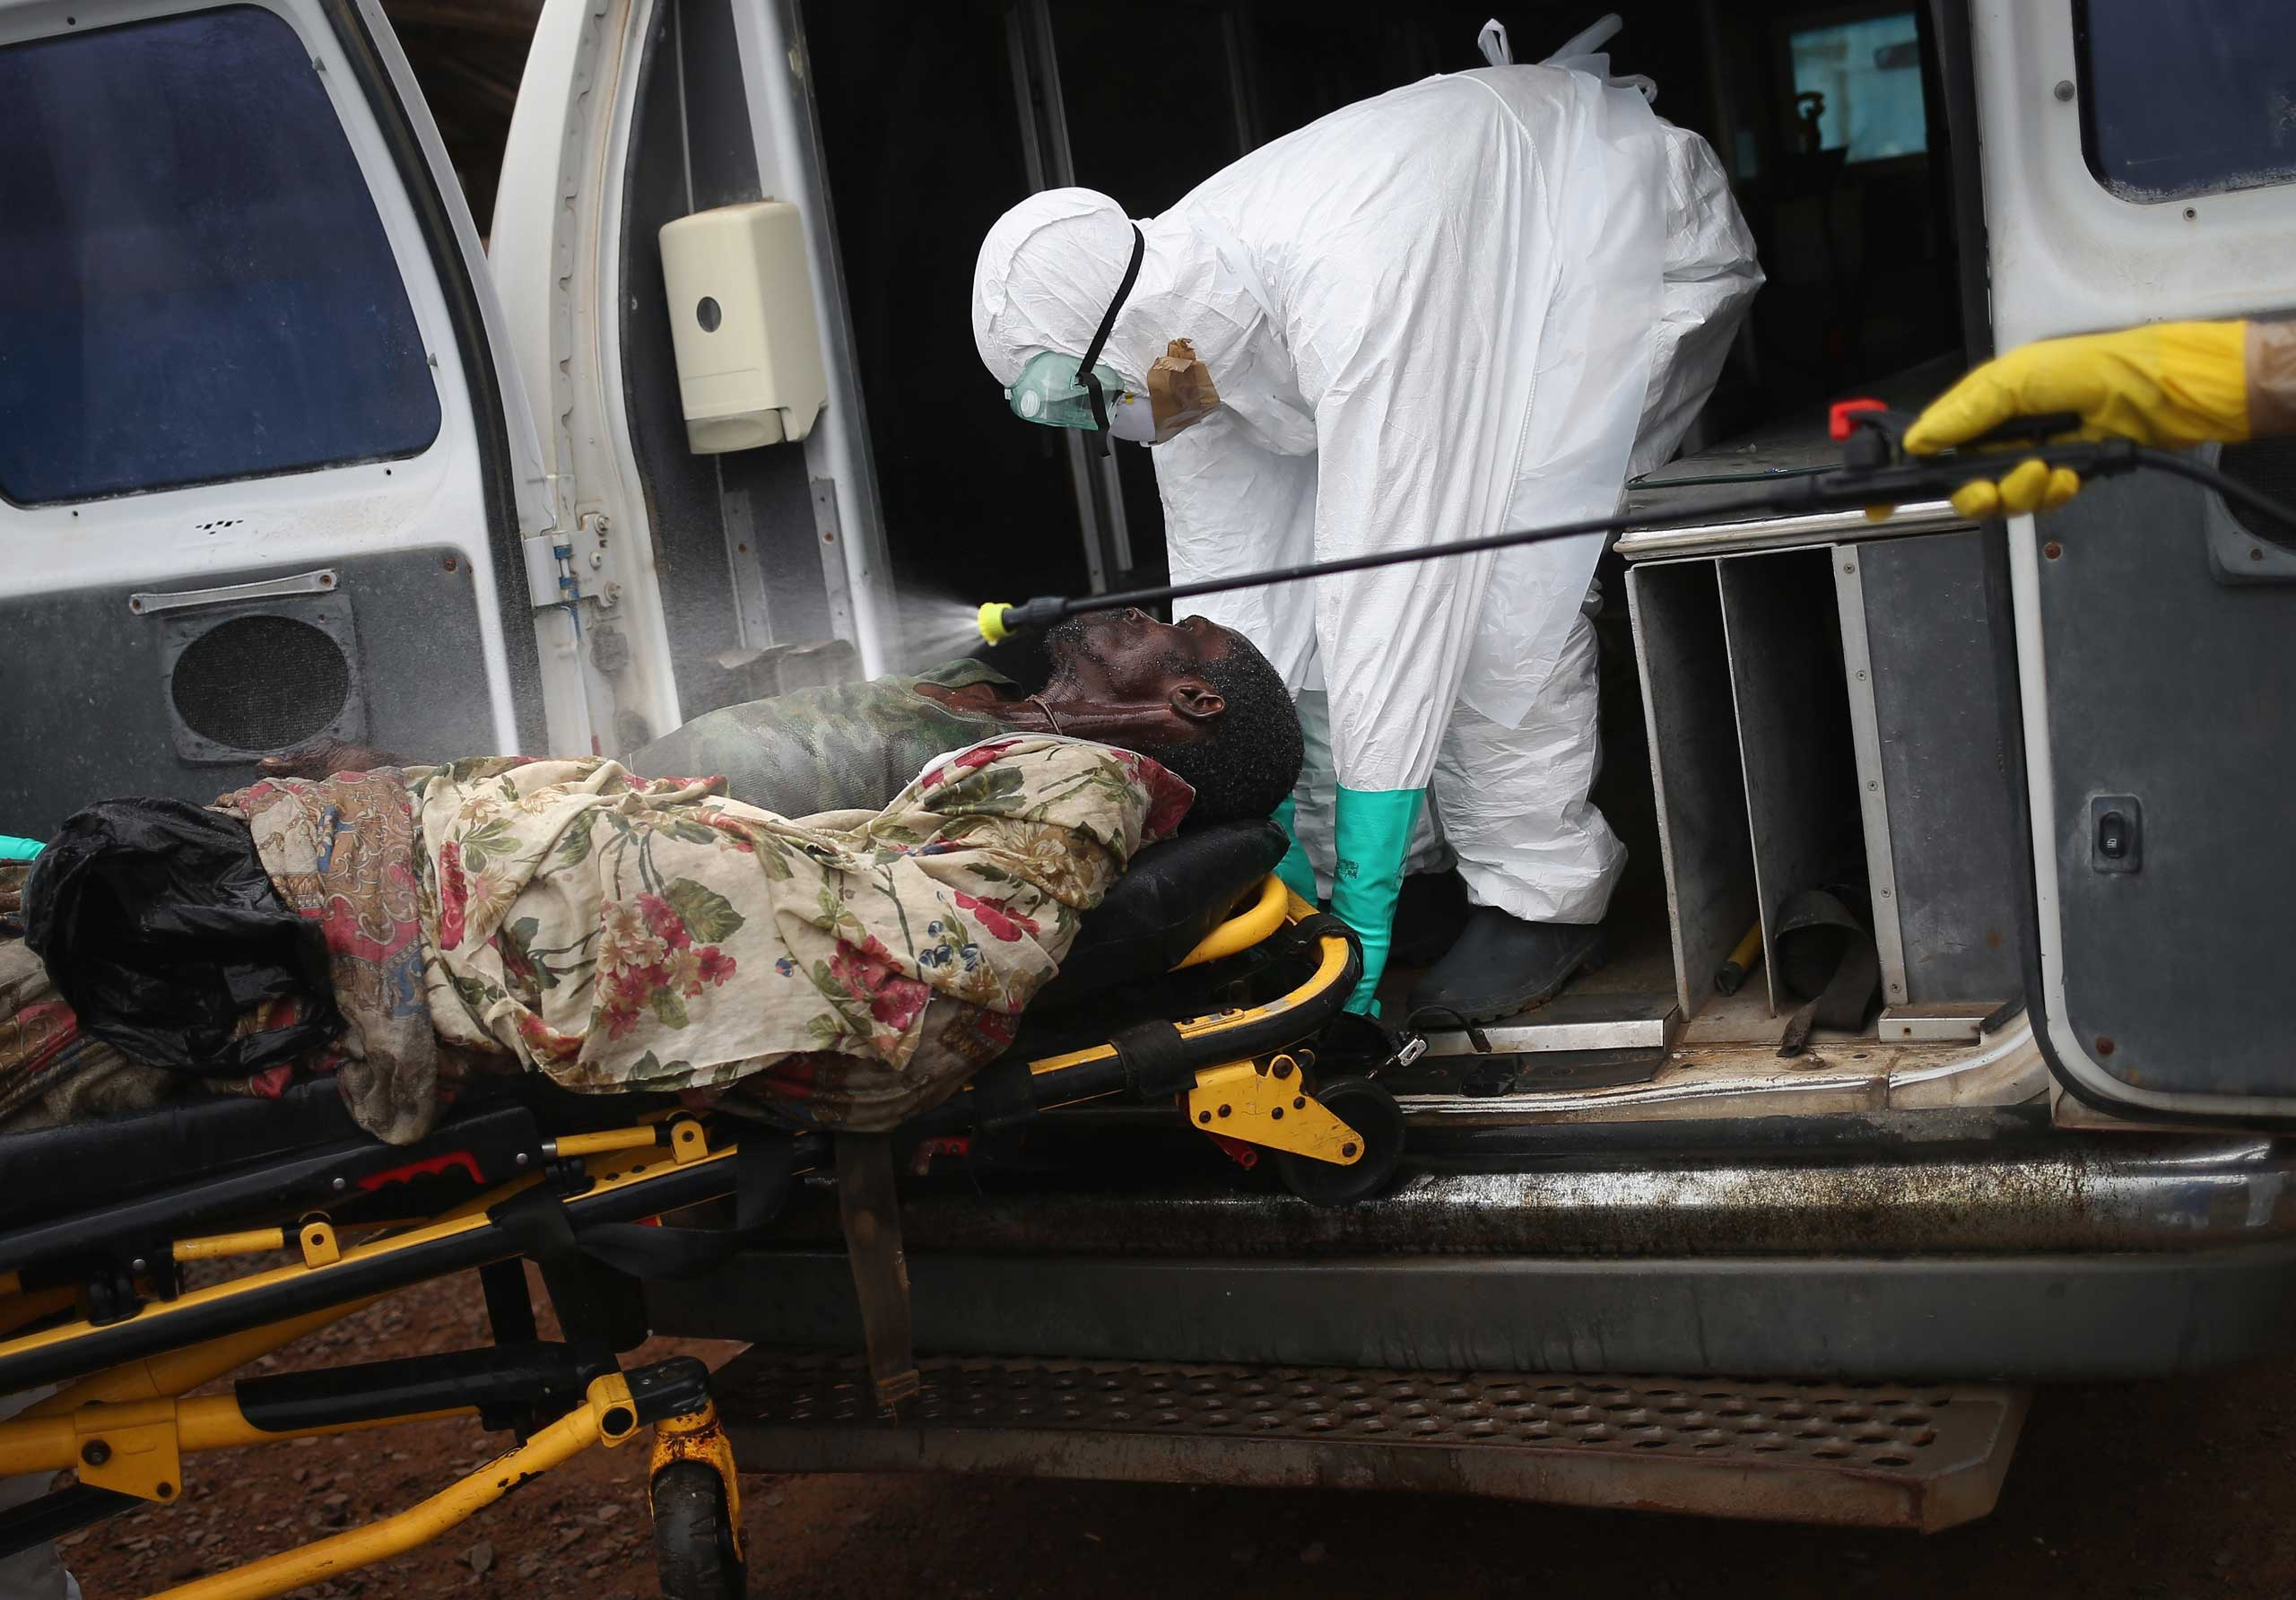 A burial team disinfects an Ebola victim while collecting him for cremation on Oct. 2, 2014 in Monrovia, Liberia.